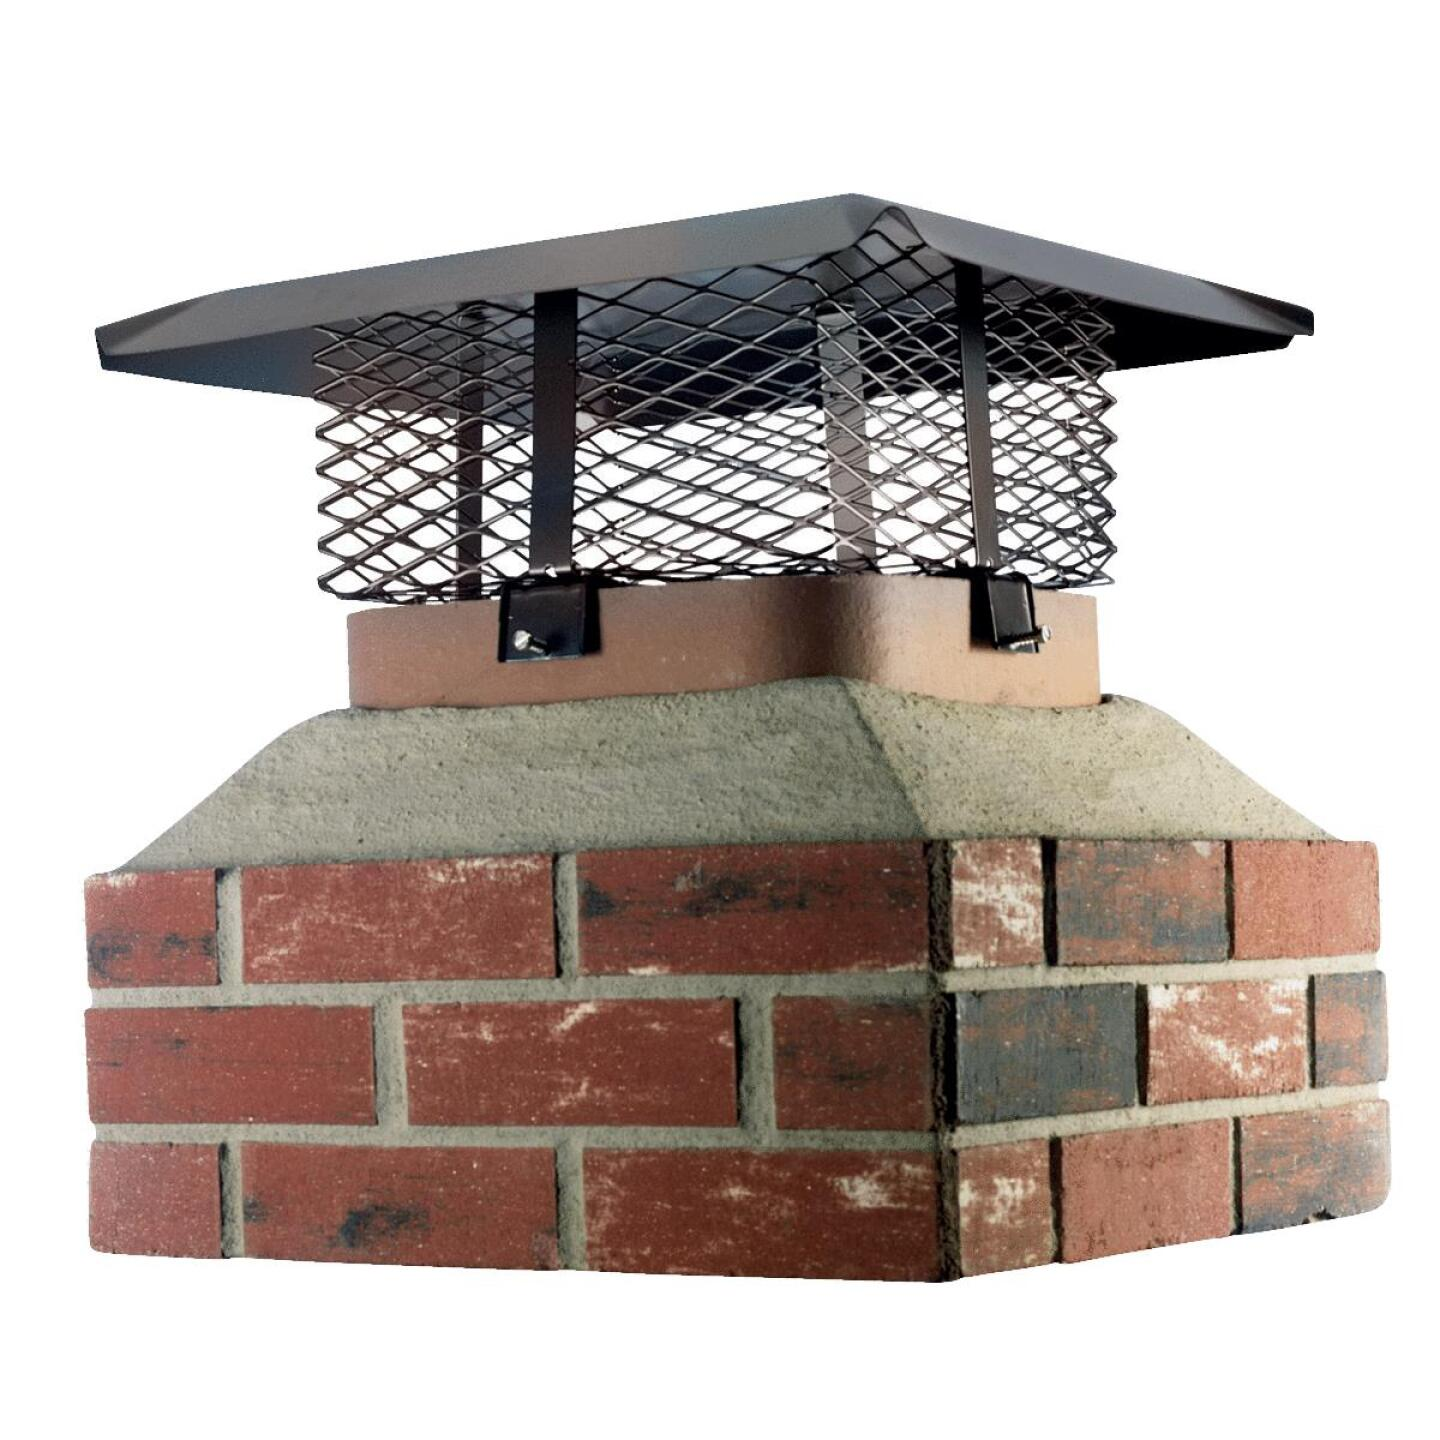 Shelter Adjustable Black Galvanized Steel Single Flue Chimney Cap for Large Flue Image 1